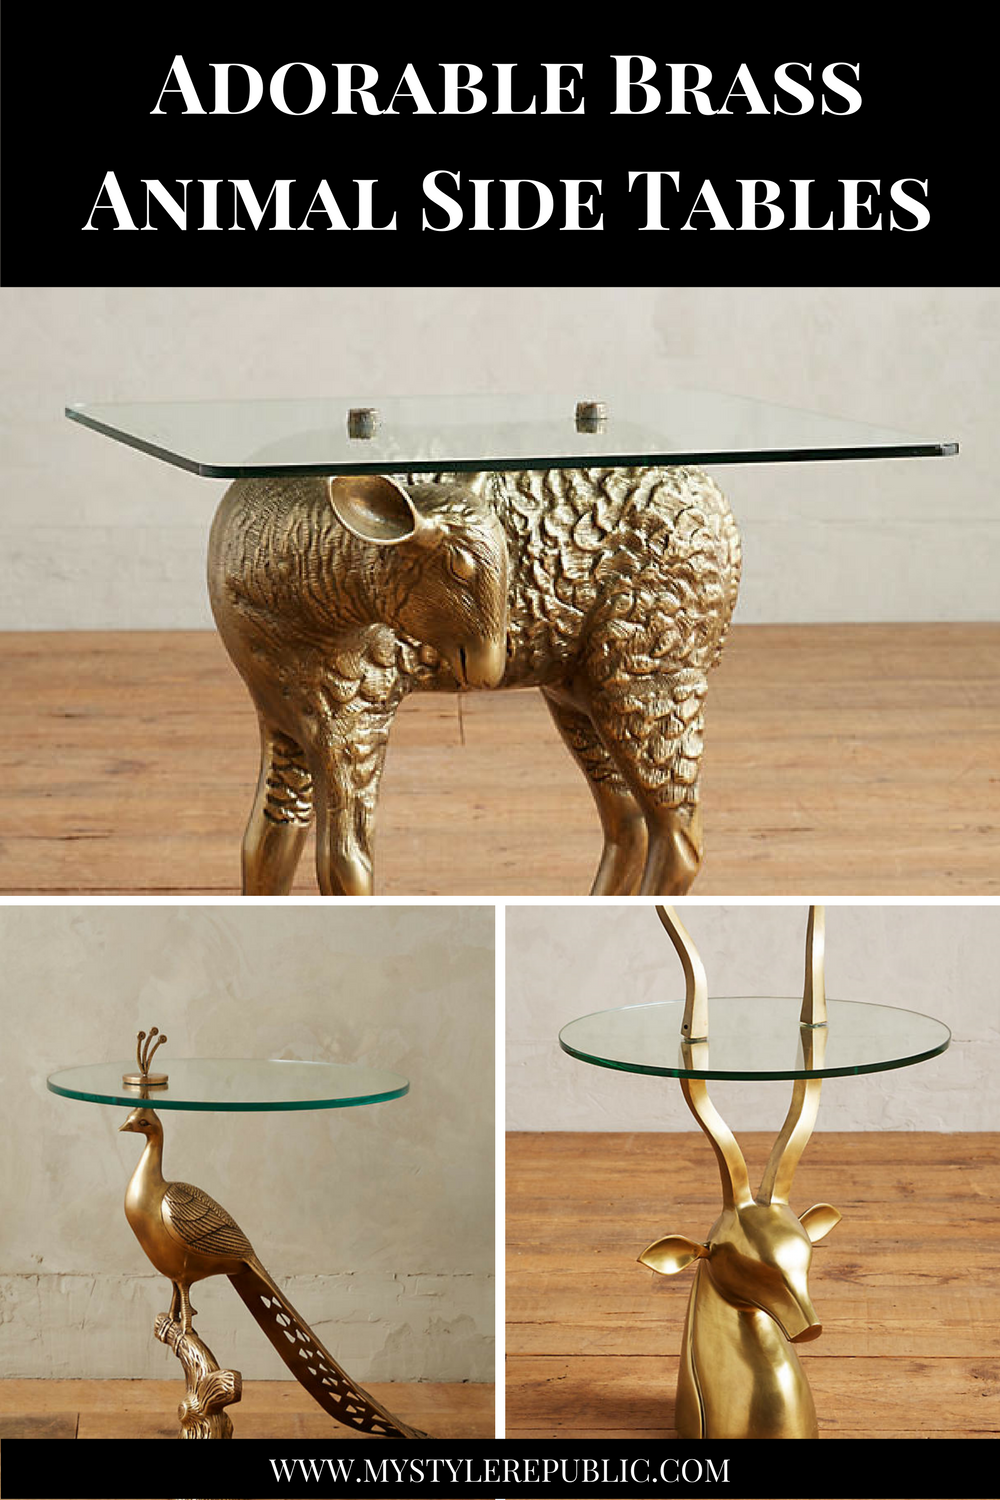 Adorable Brass Animal Side Tables